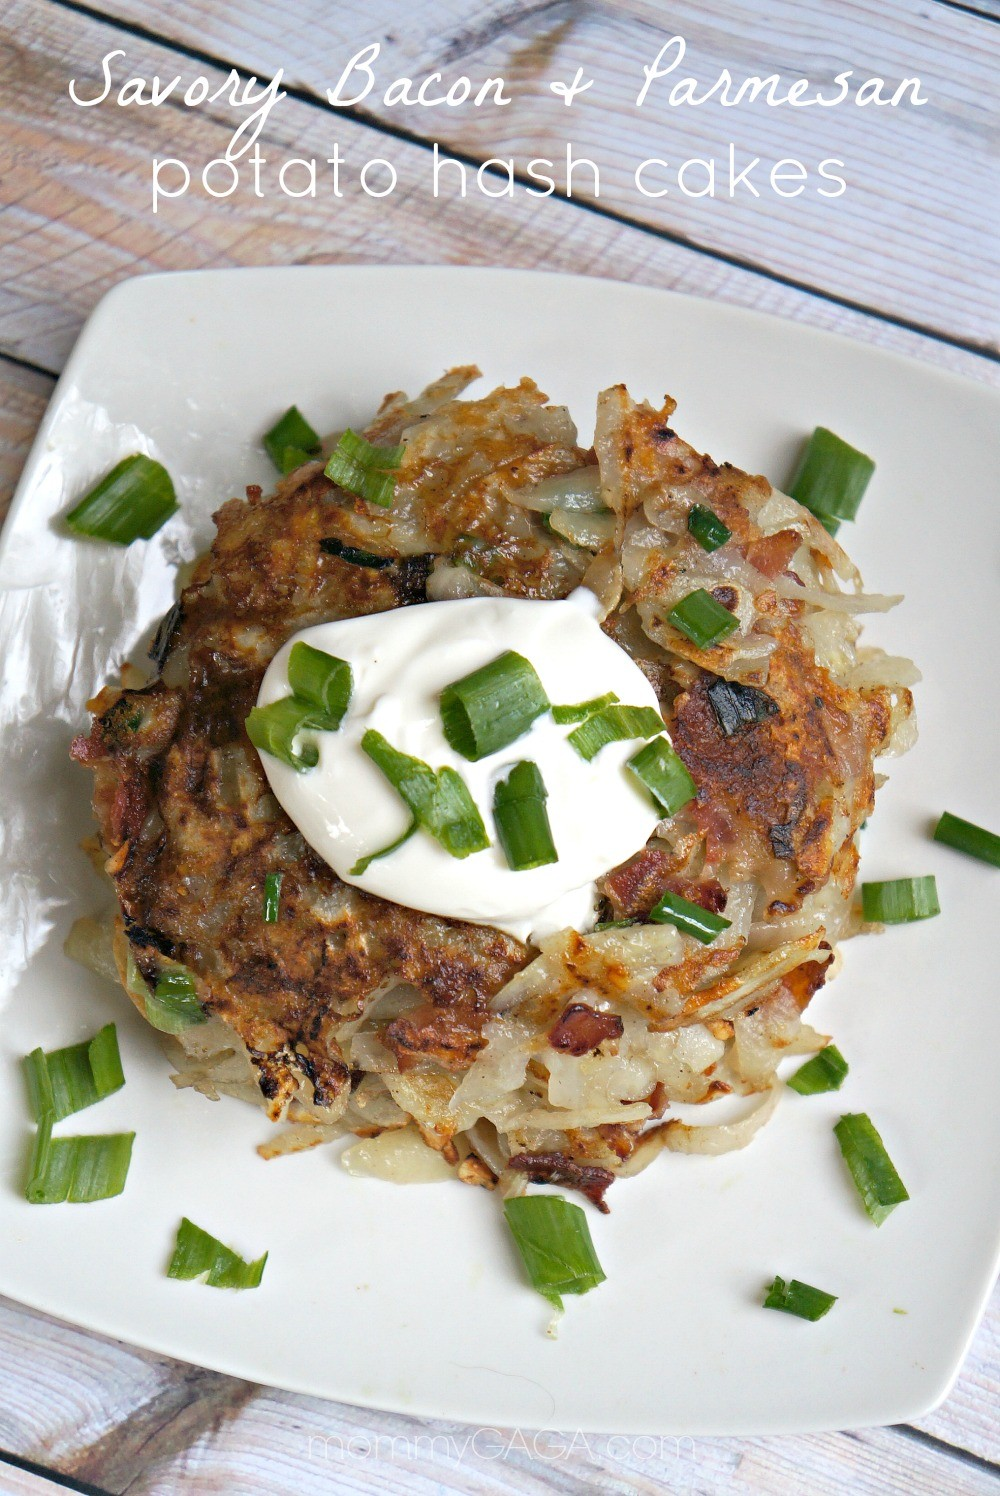 Savory Bacon and Parmesan Potato Hash Cakes #StandUpCheese